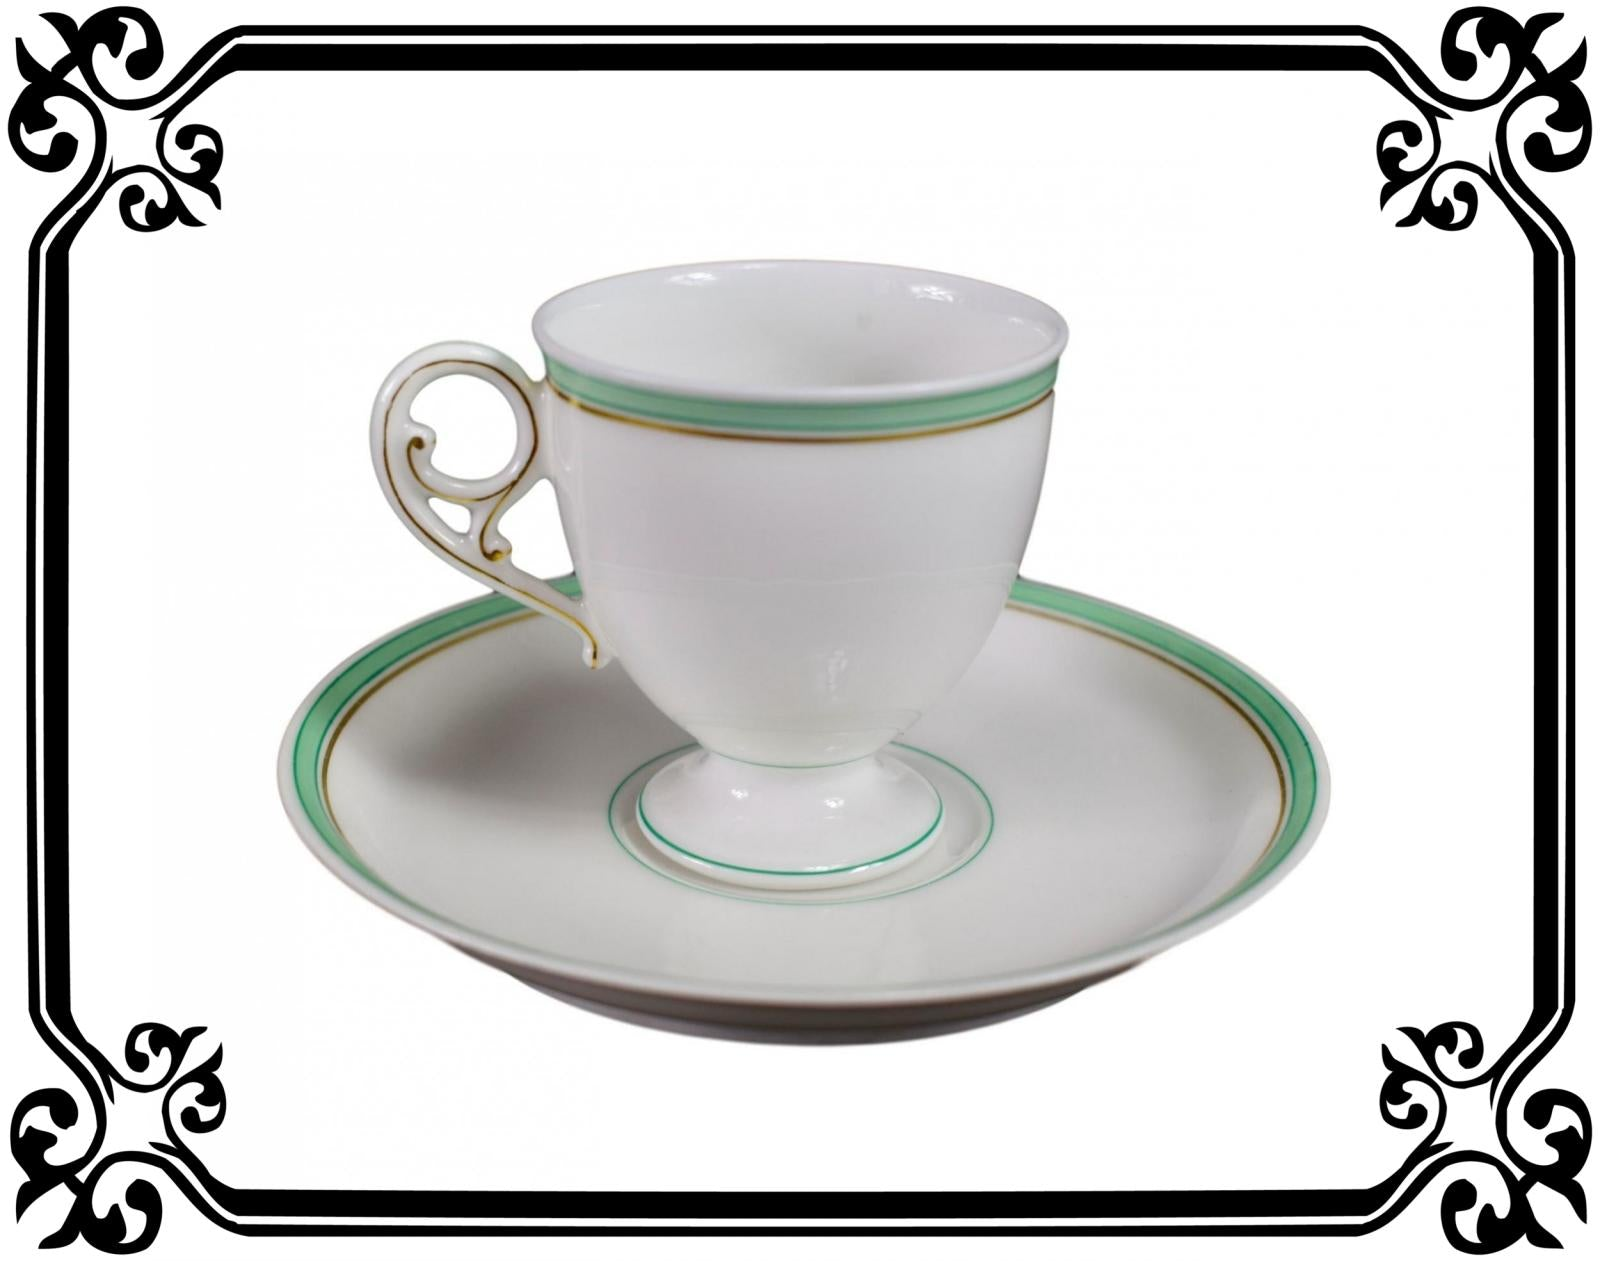 French Porcelain Cup and Saucer of Paris 19th - Saint Honoré Paris N°1